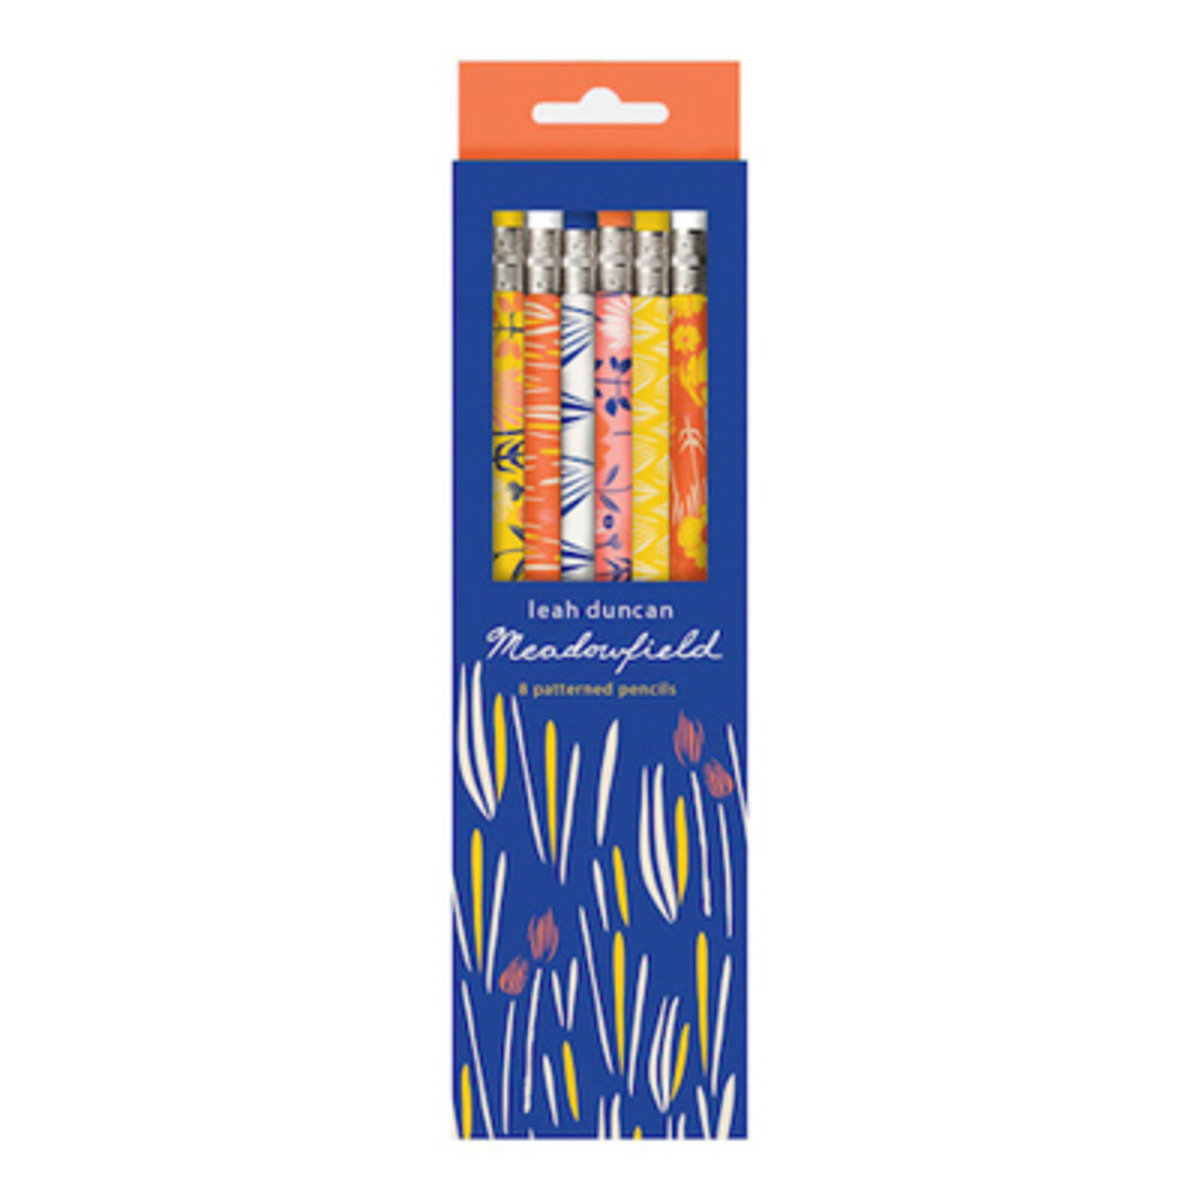 Meadowfield Pencil Set